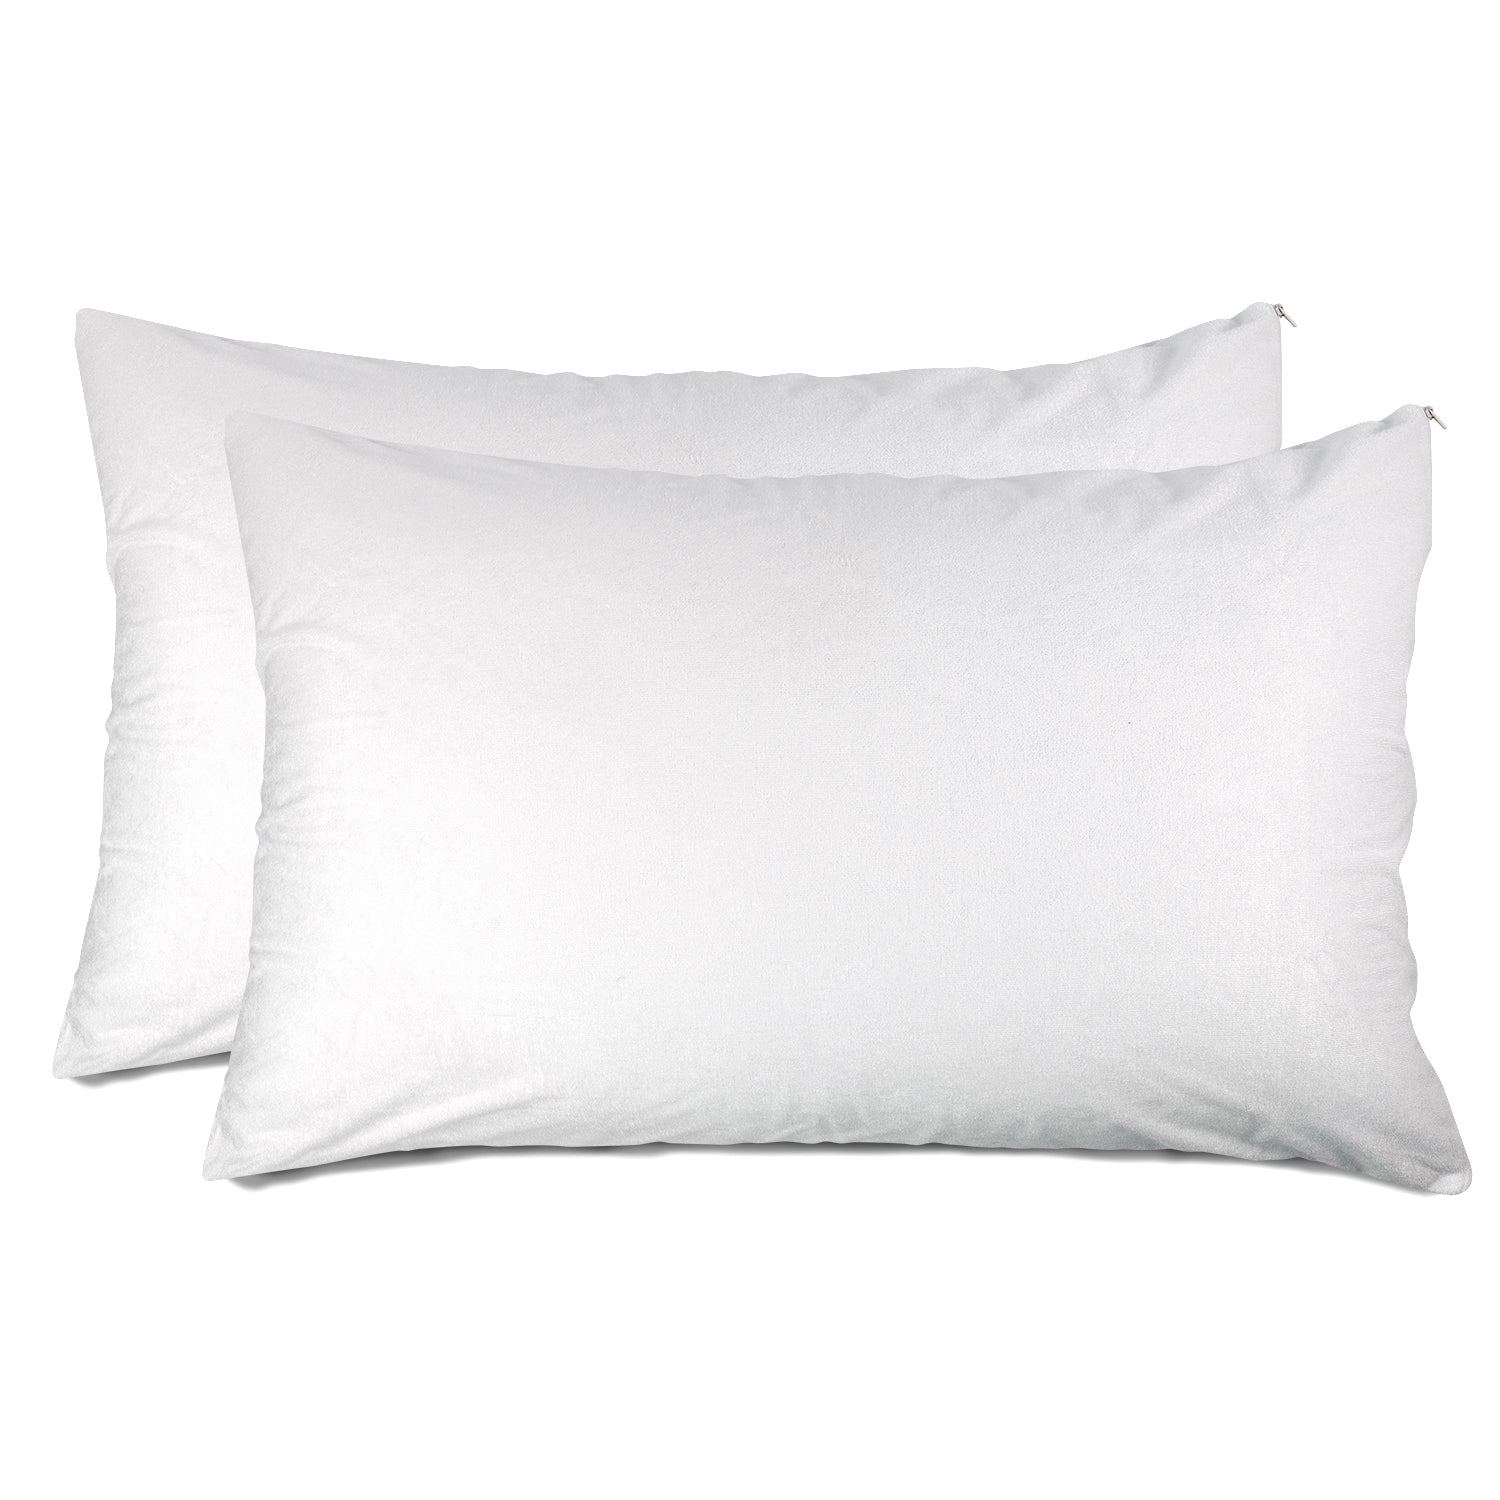 Bamboo Waterproof Zippered Pillow Protector